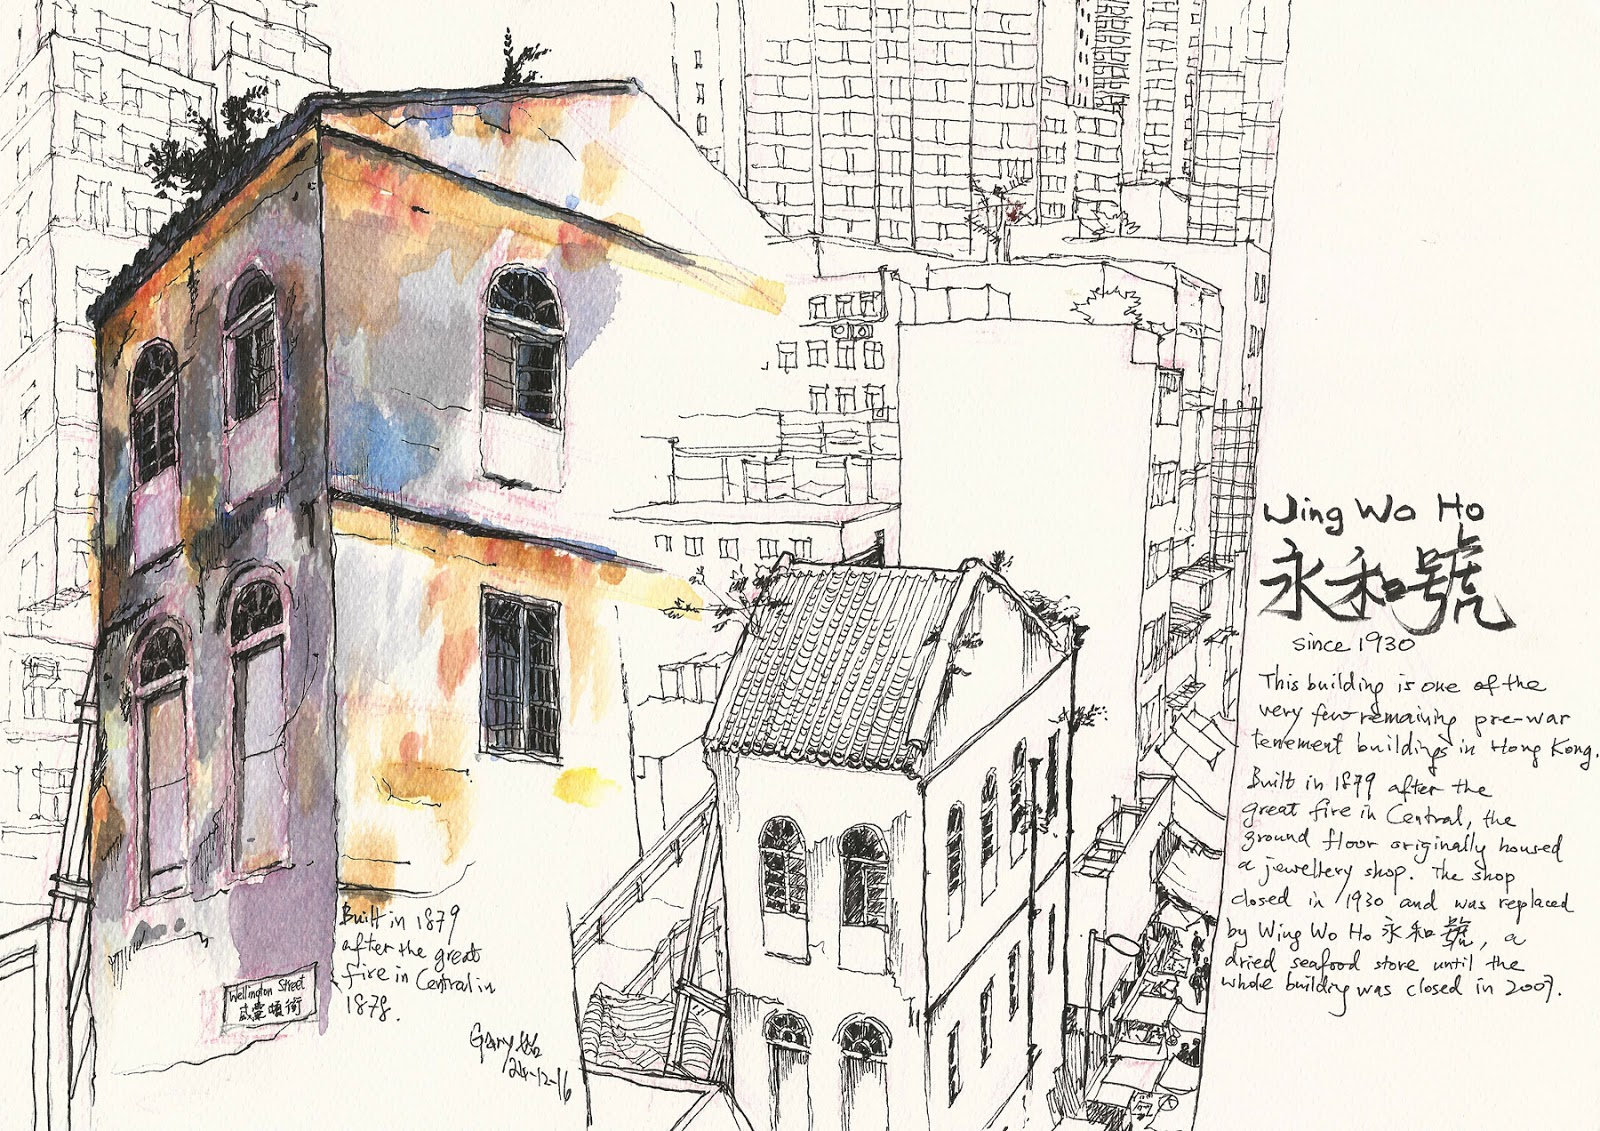 Old Hong Kong building gives a glimpse of the past | Urban Sketchers